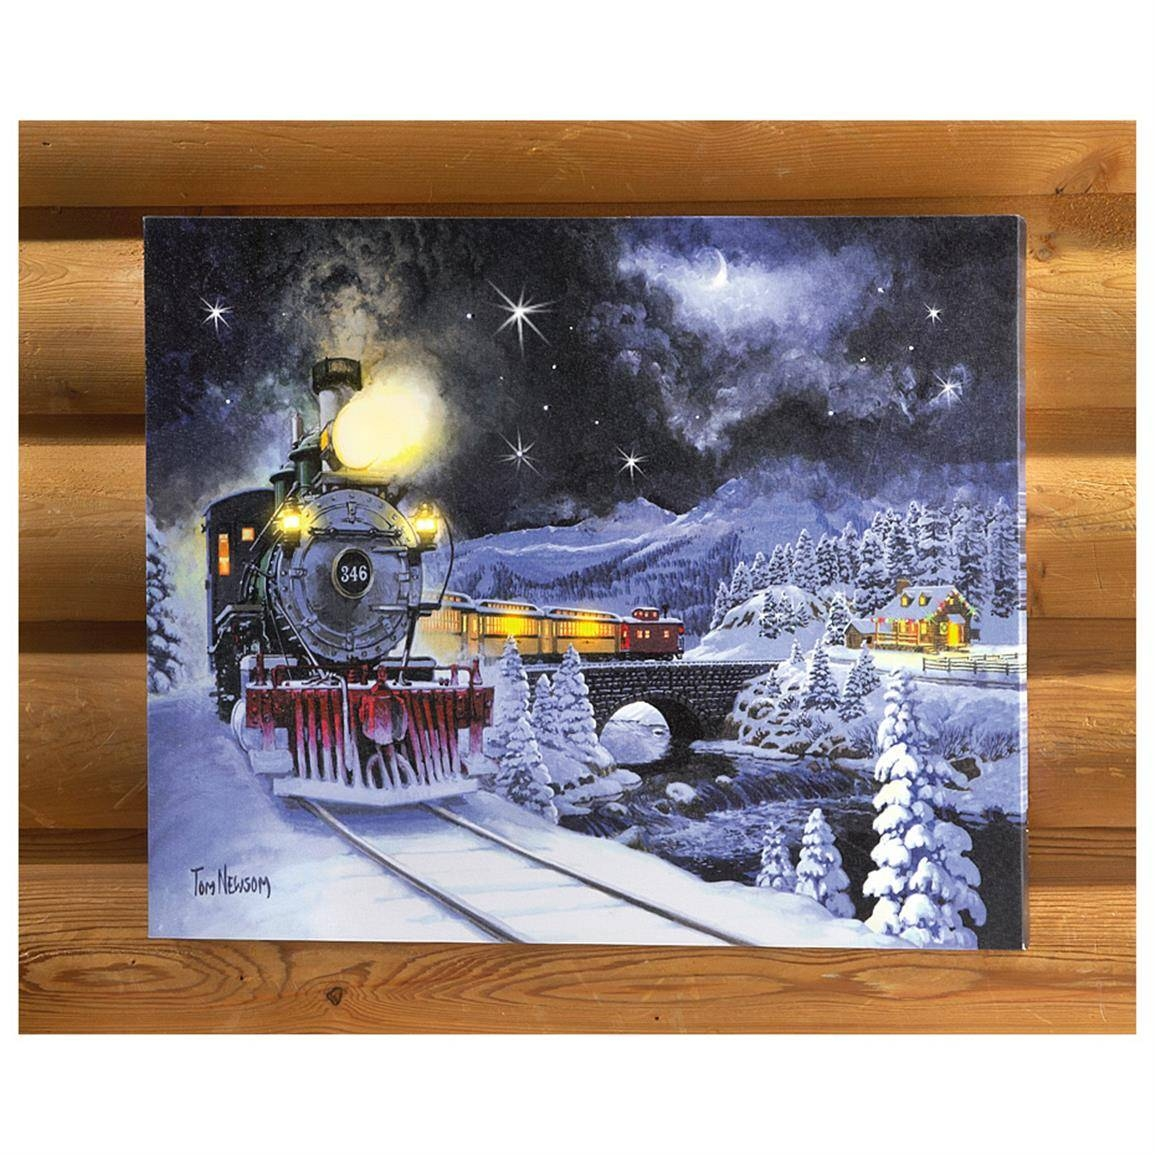 Canvas Wrapped Christmas Wall Art – 616310, Seasonal Gifts At Pertaining To Best And Newest Seasonal Wall Art (View 8 of 20)